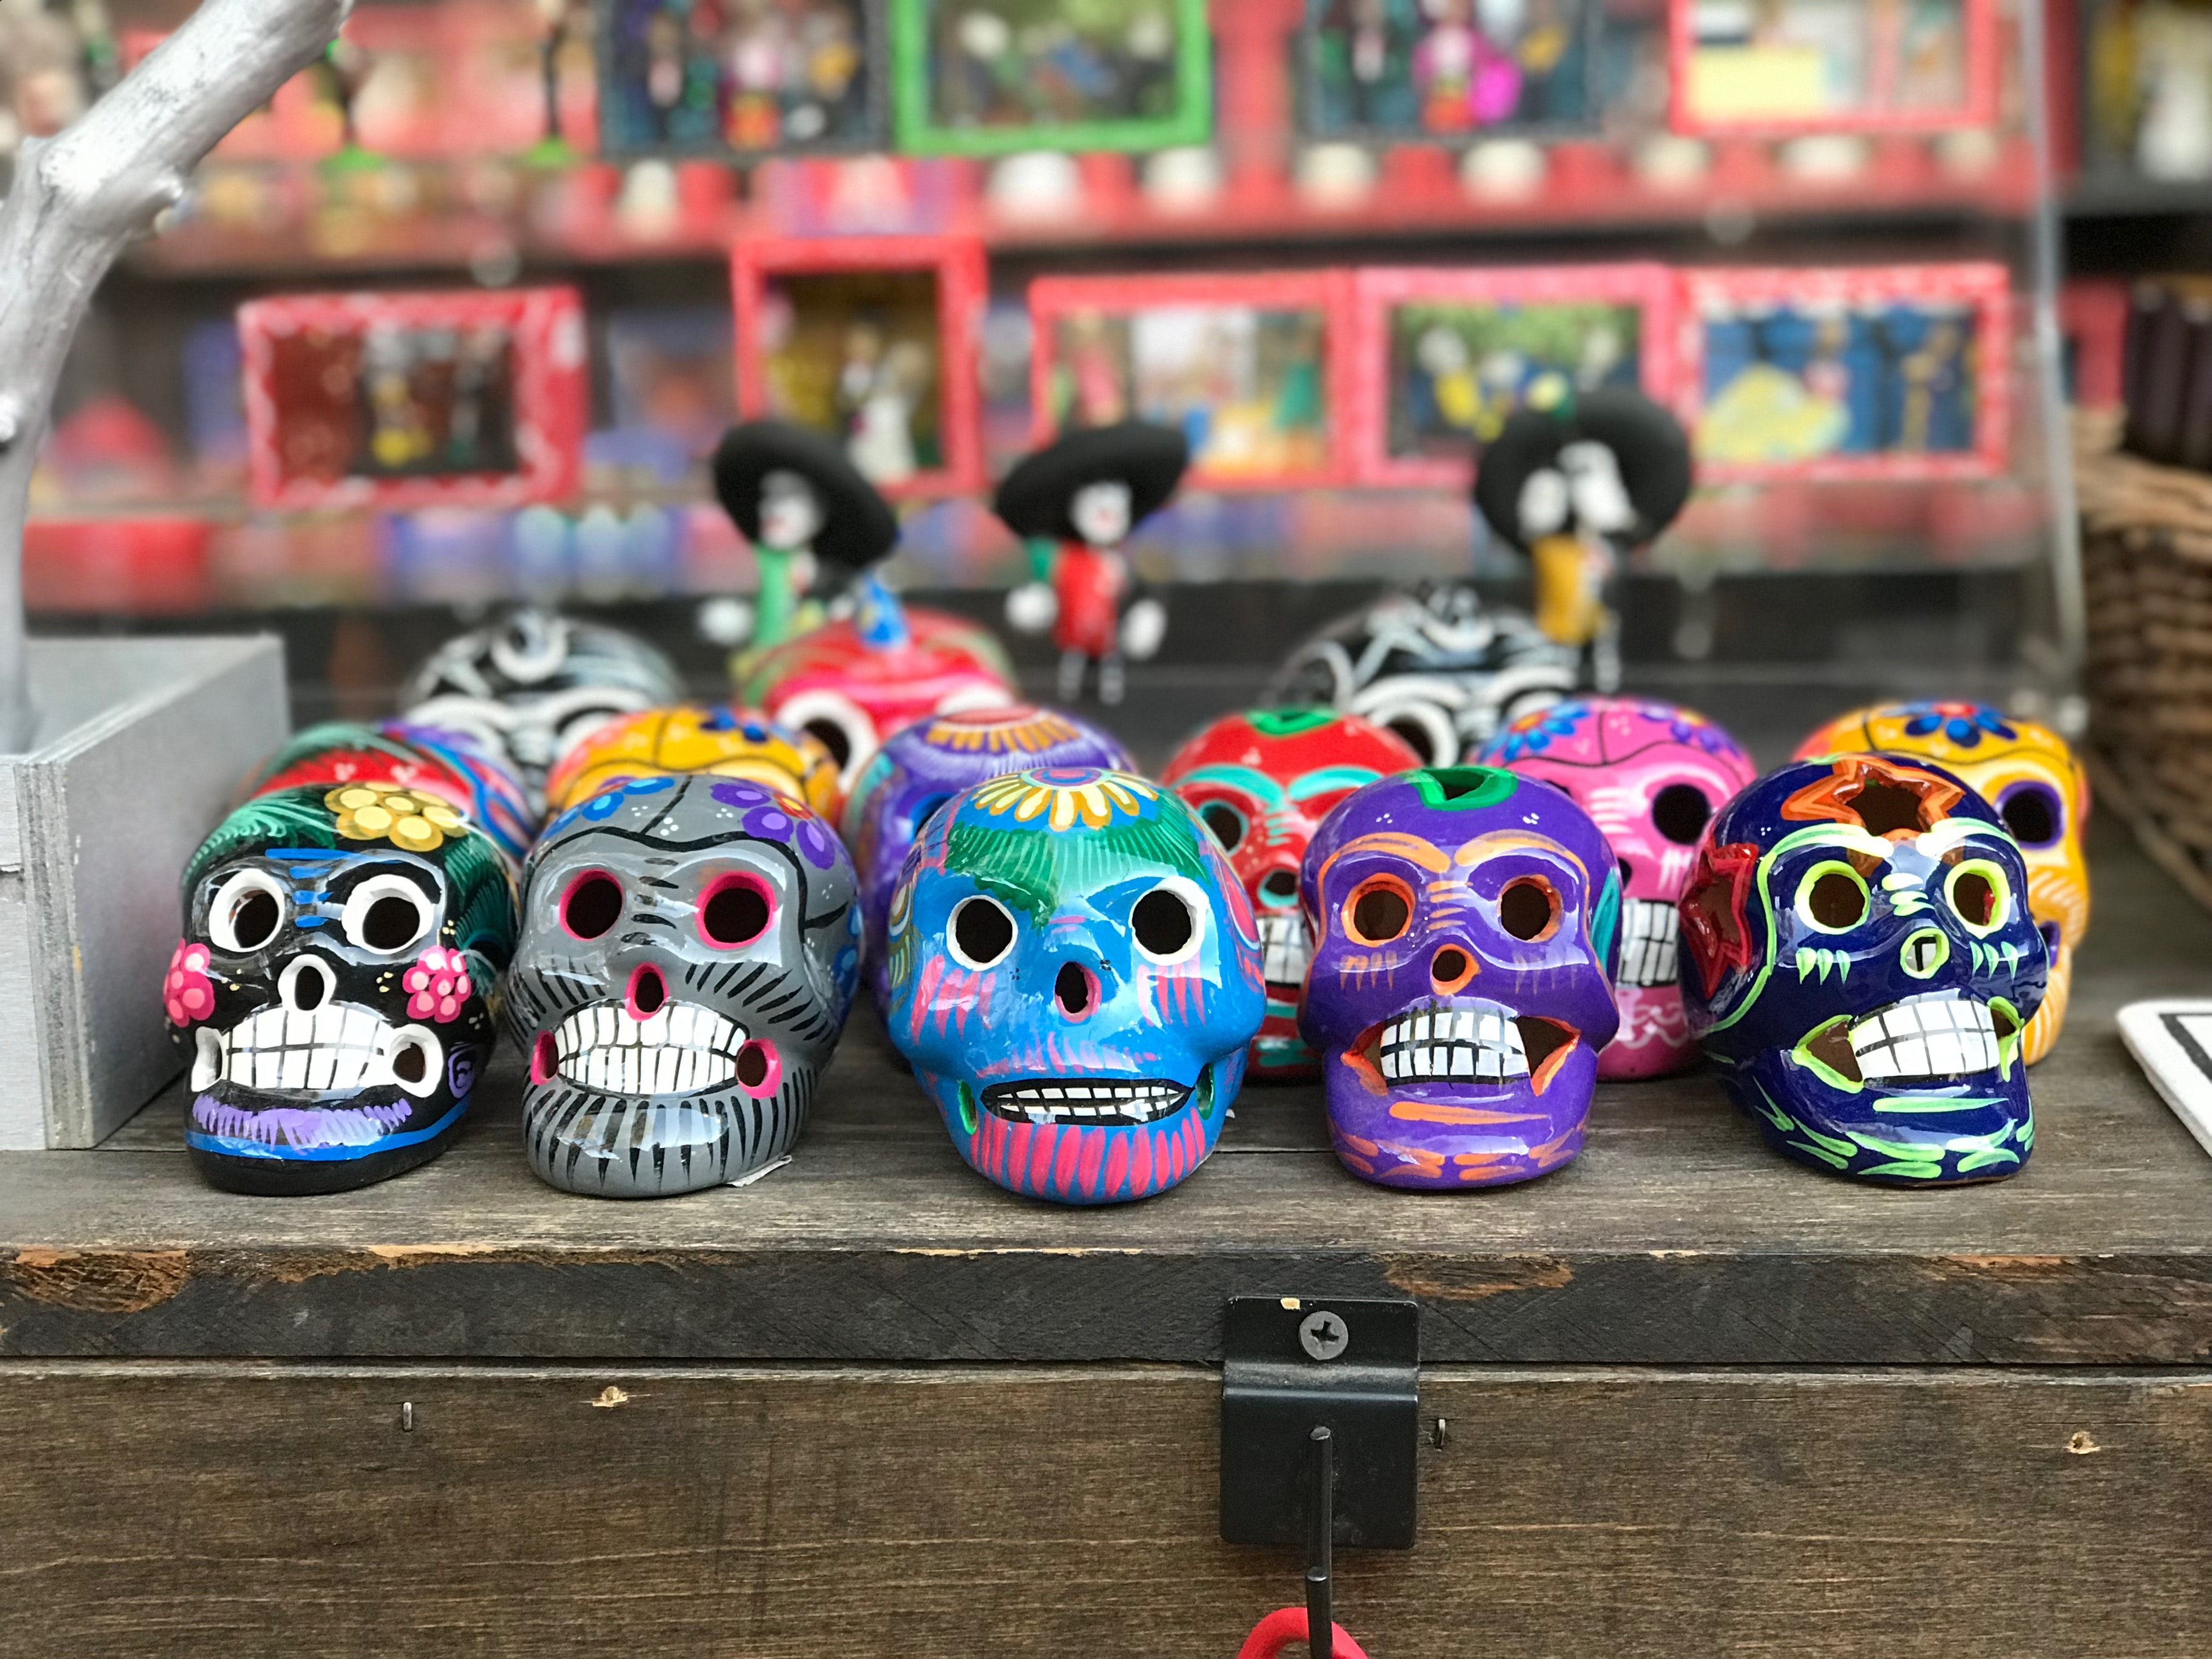 multi-colored sugar skull figurines